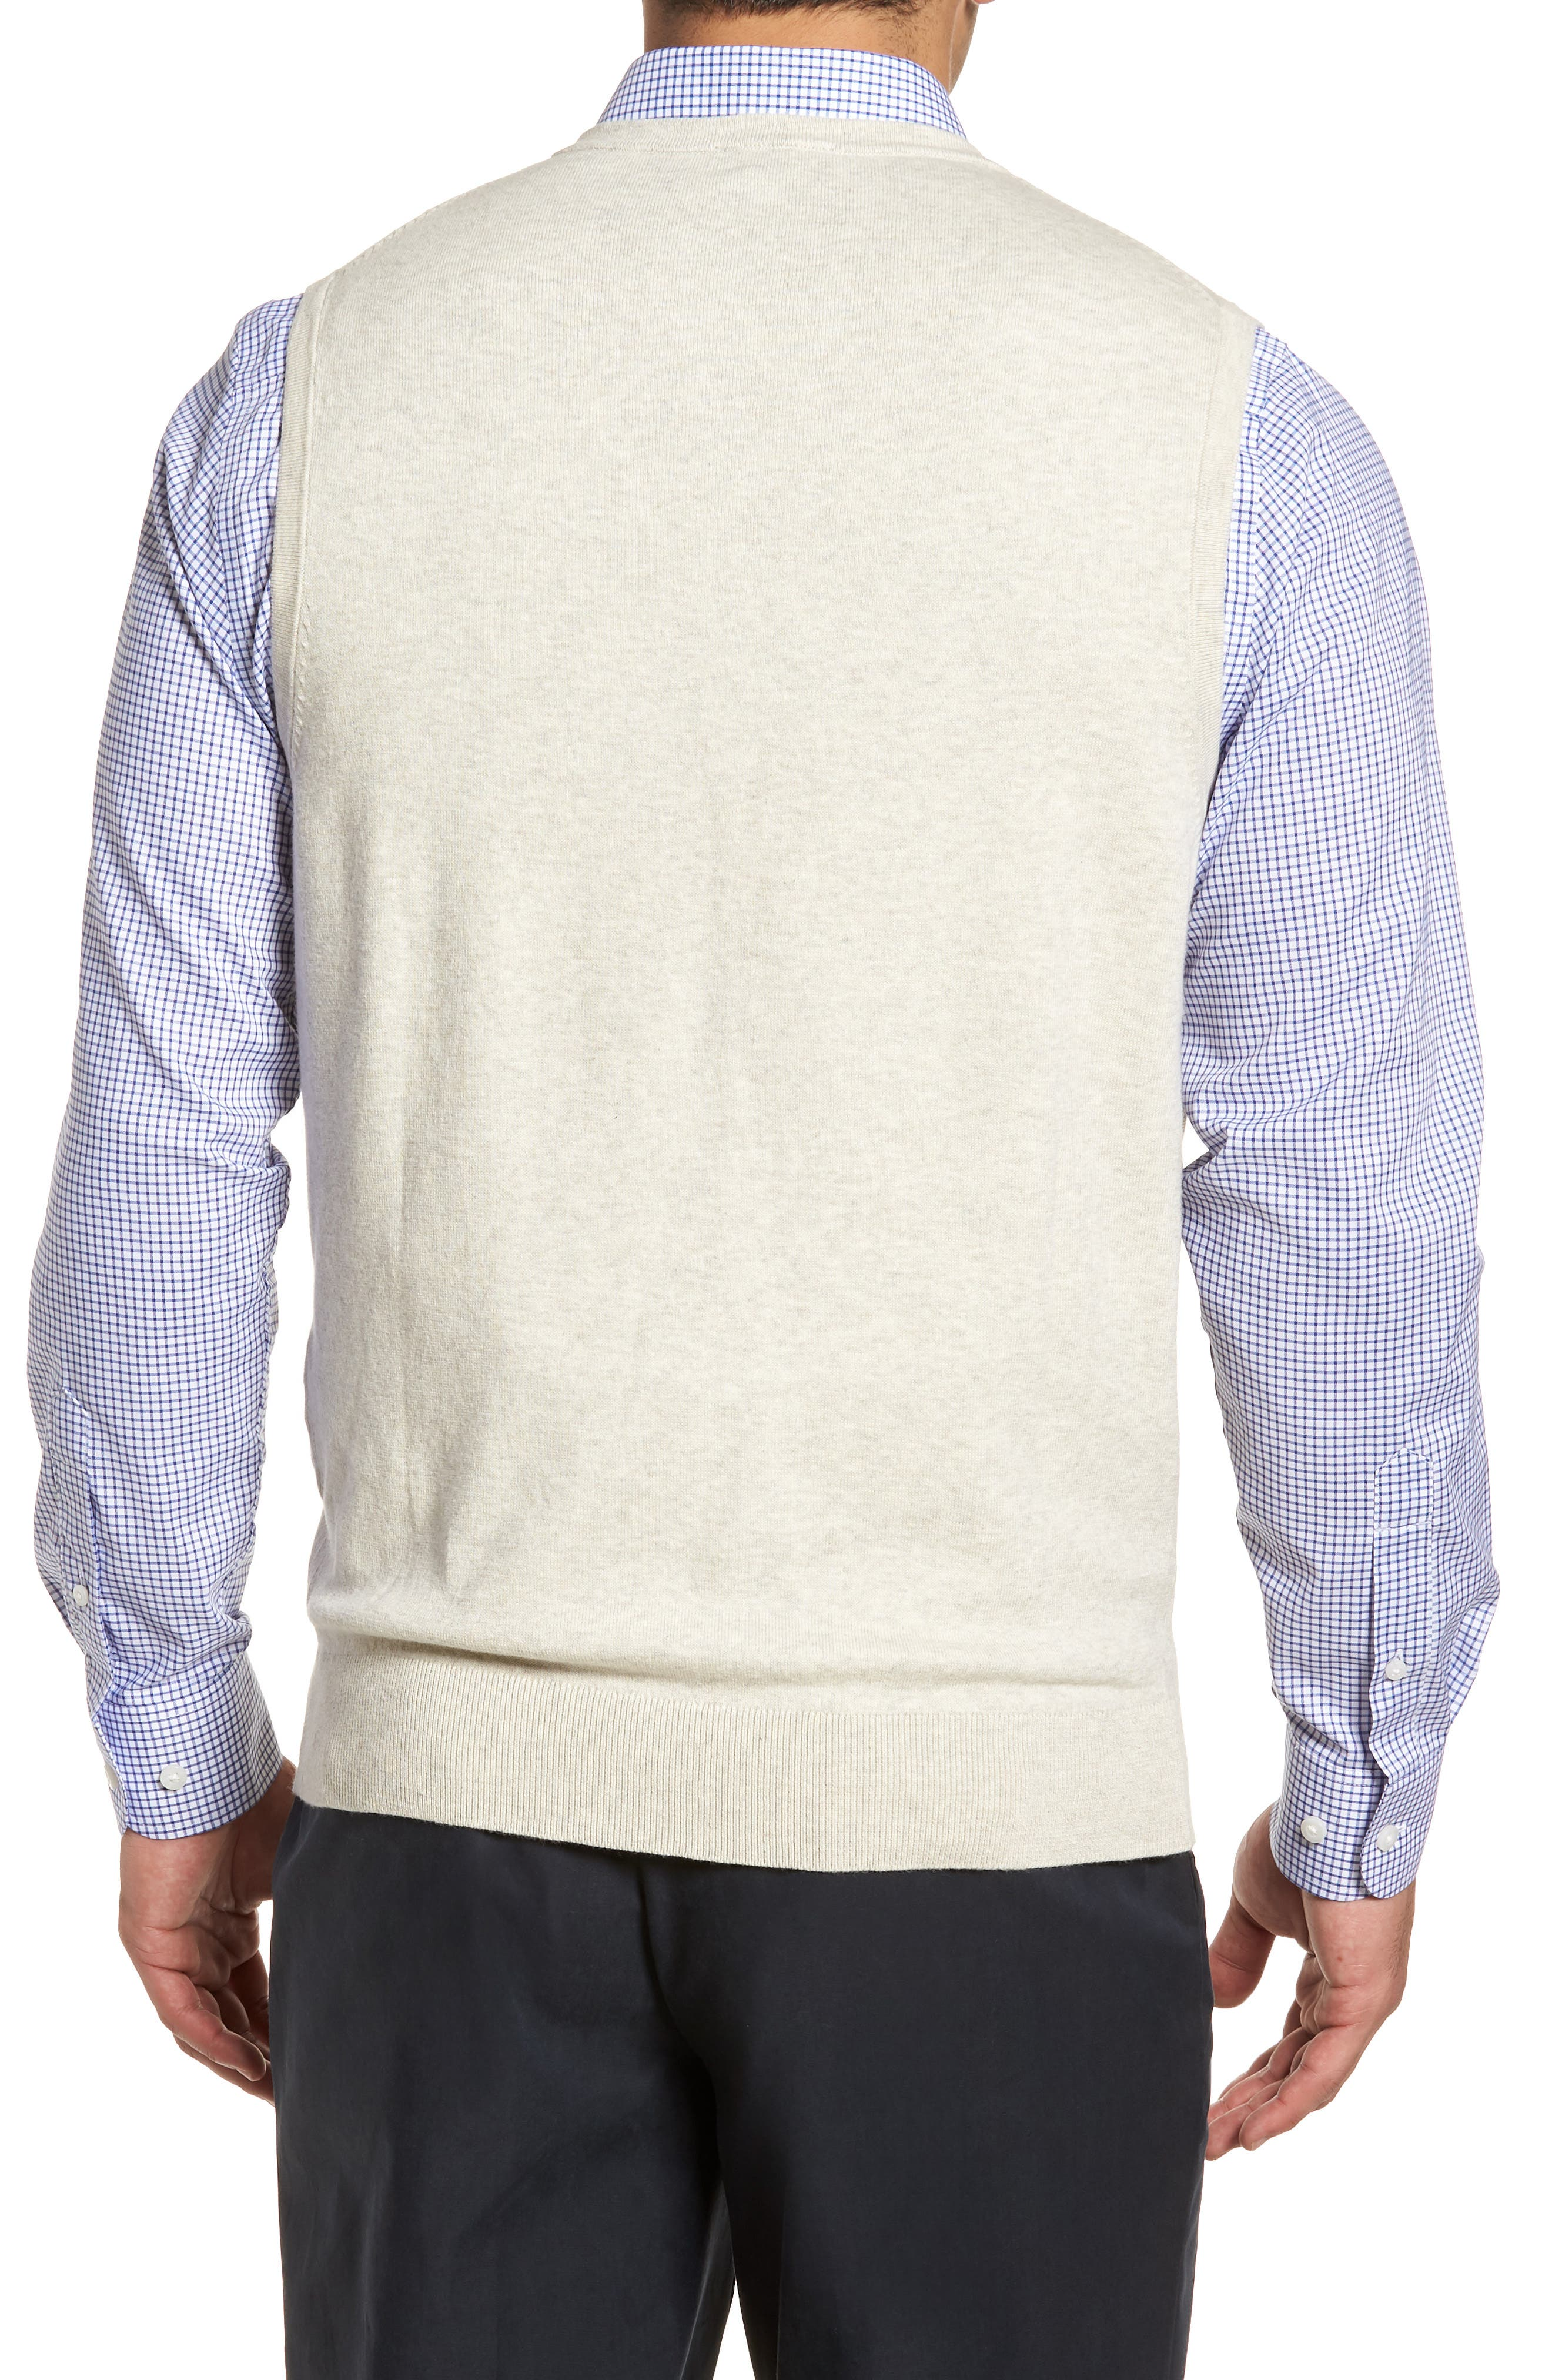 Lakemont Classic Fit Sweater Vest,                             Alternate thumbnail 2, color,                             OATMEAL HEATHER